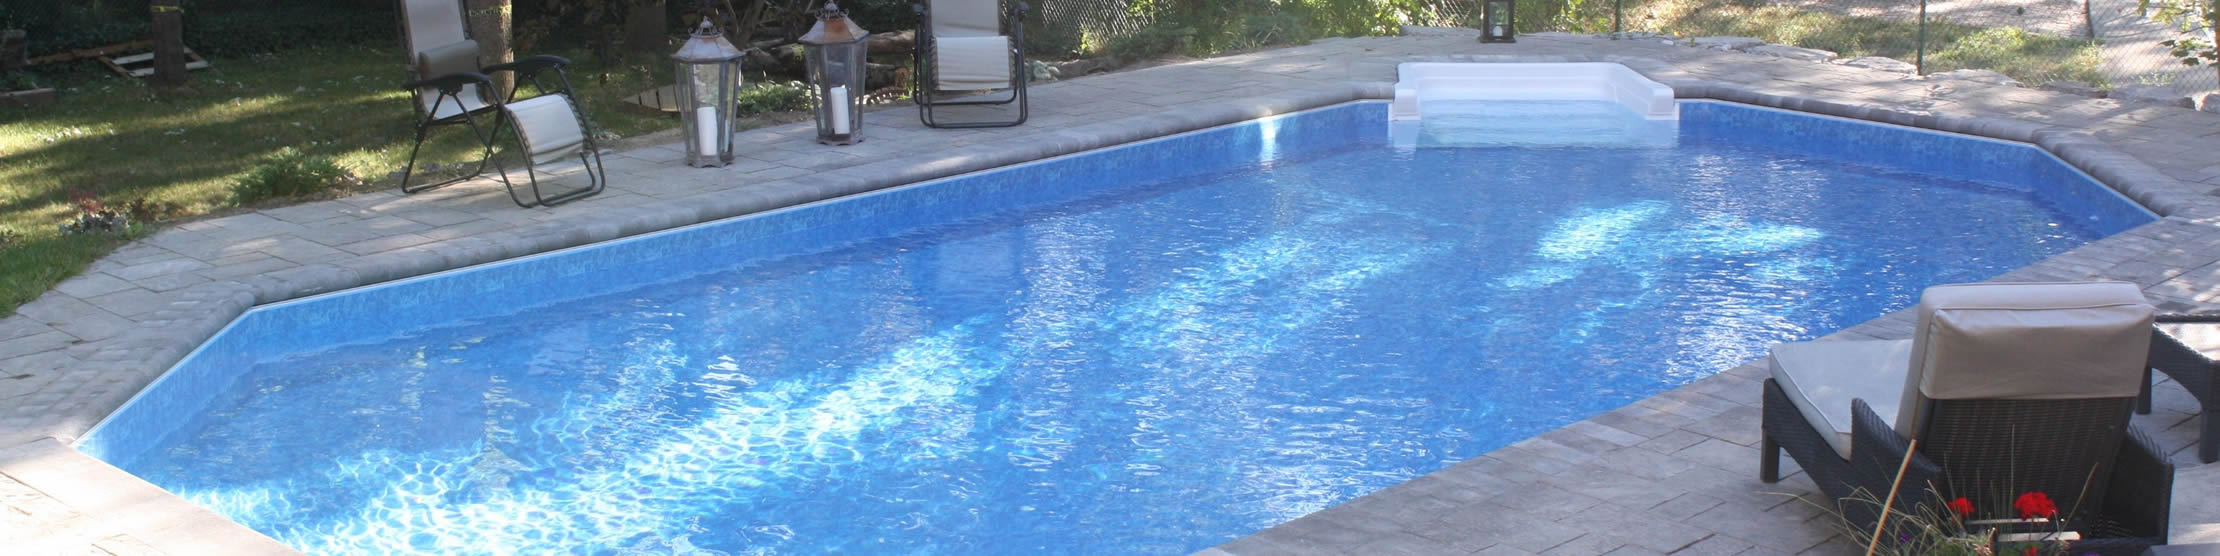 On Ground Vs Inground Smart Pools Beautiful Affordable On Ground Swimming Pool Installation